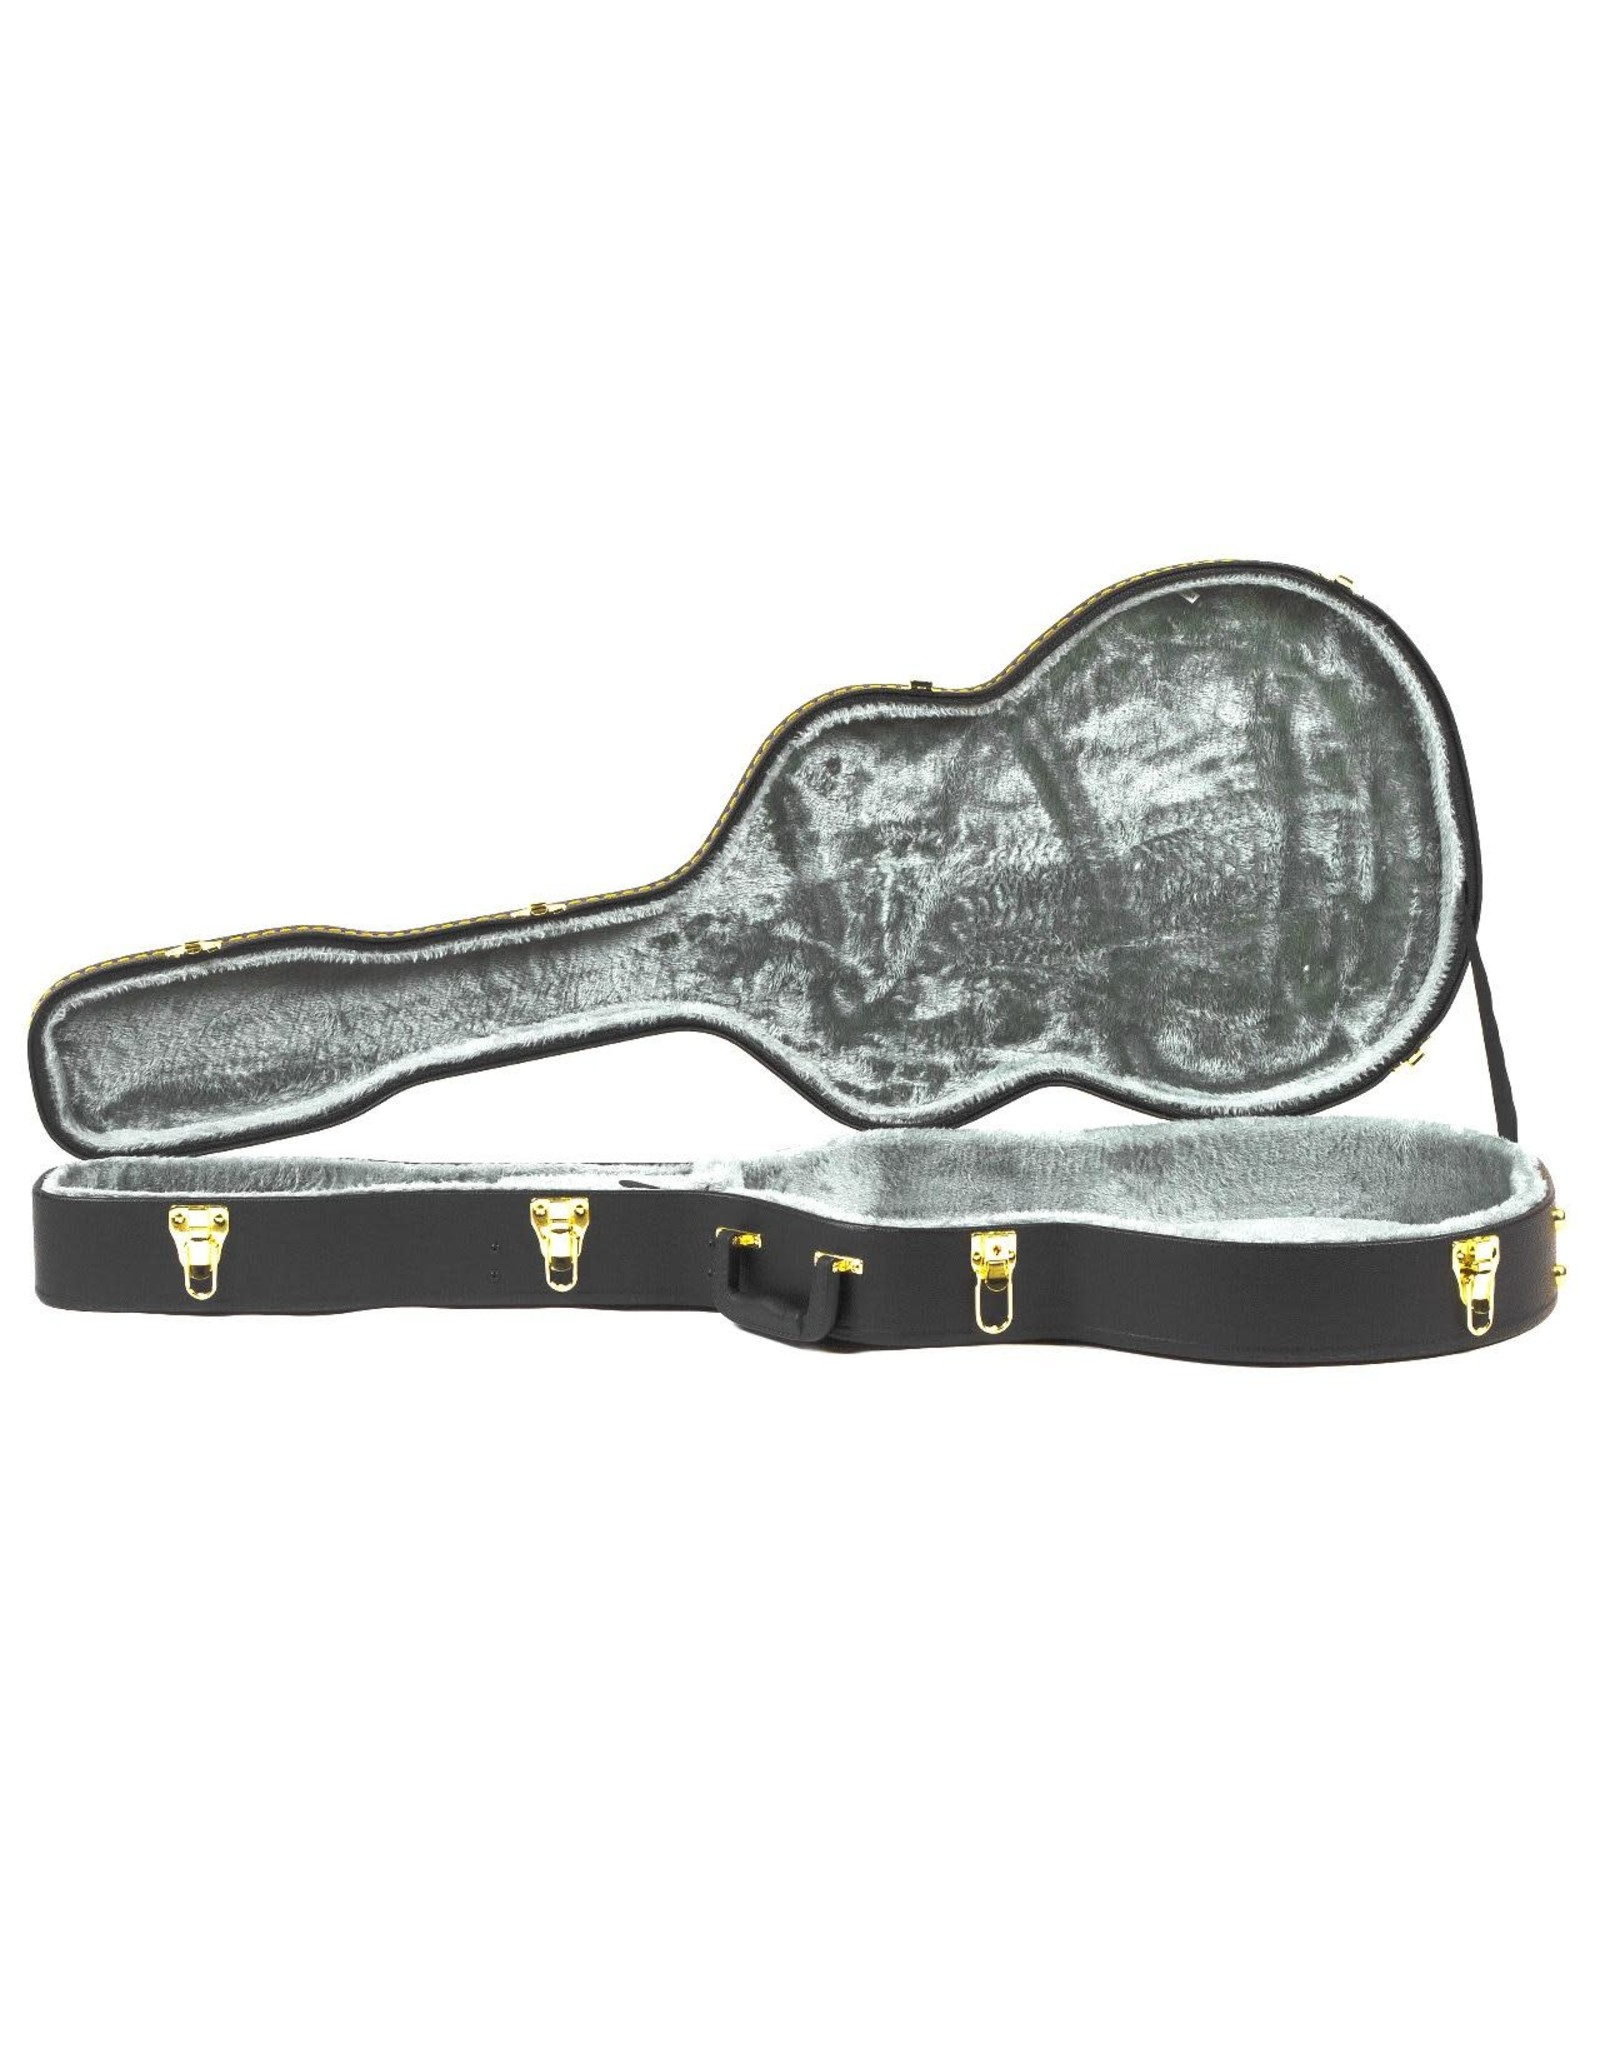 Guardian Guardian CG-018-HS Economy Archtop Case, Hollowbody Shallow